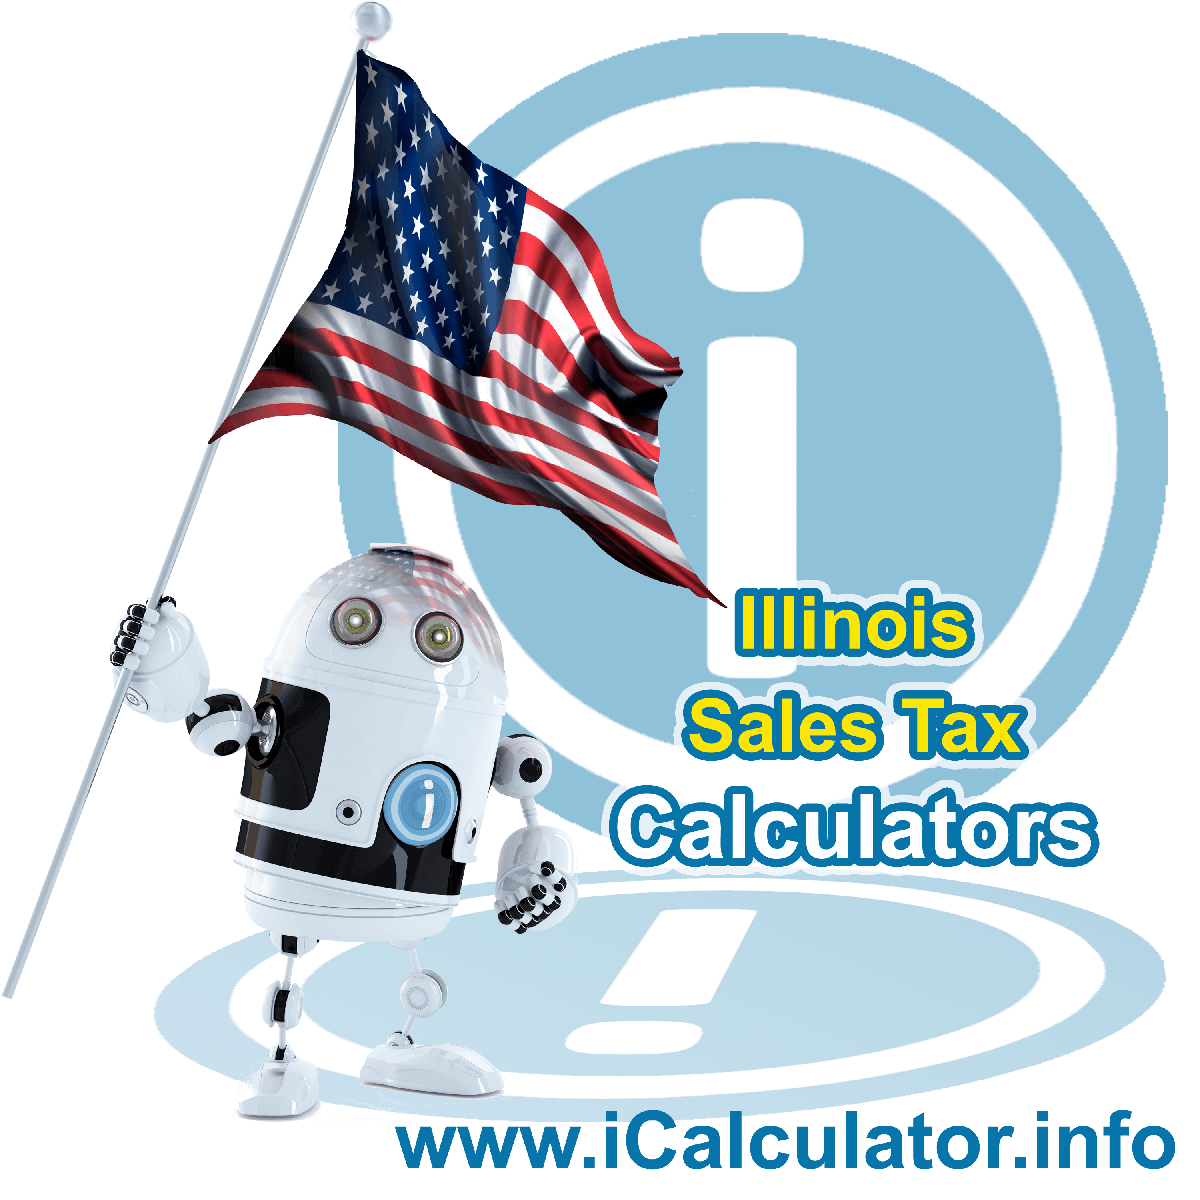 Forrest Sales Rates: This image illustrates a calculator robot calculating Forrest sales tax manually using the Forrest Sales Tax Formula. You can use this information to calculate Forrest Sales Tax manually or use the Forrest Sales Tax Calculator to calculate sales tax online.